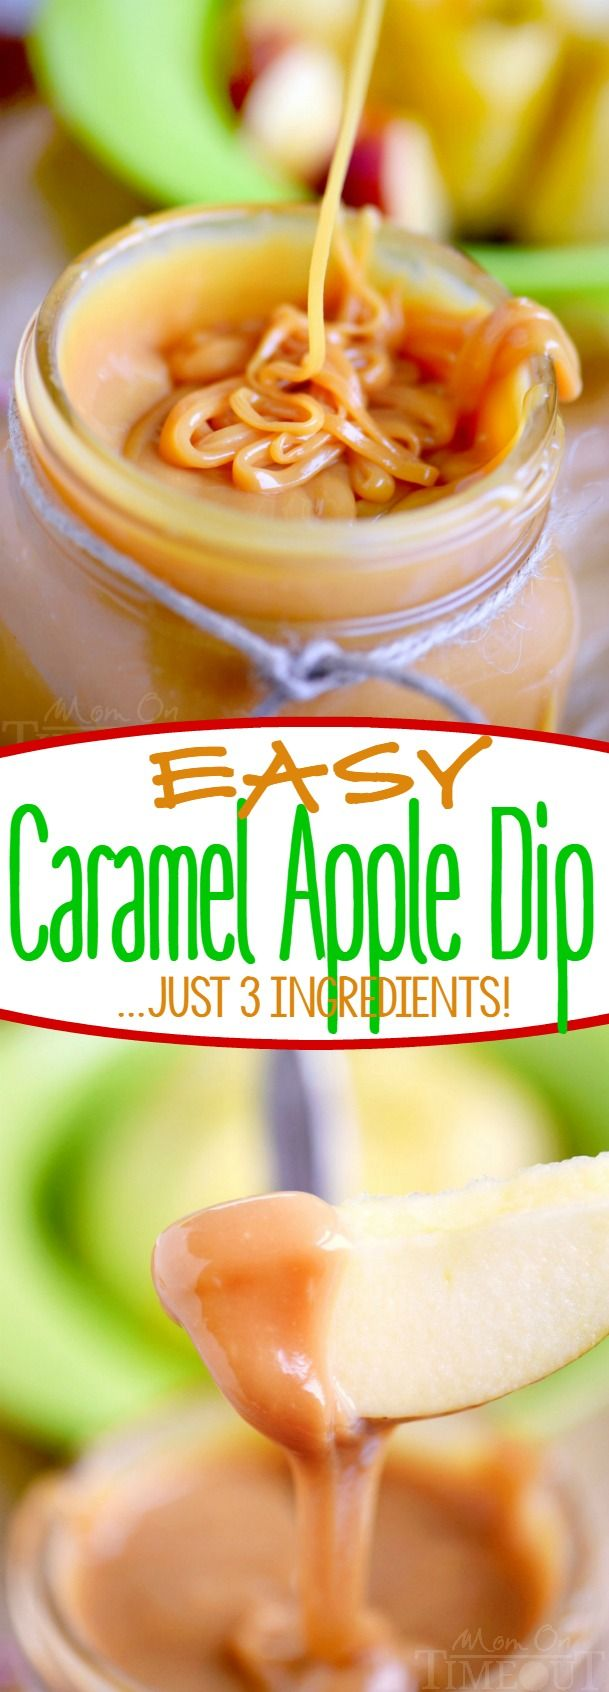 This Easy Caramel Apple Dip has just 3 ingredients! Perfect for dipping apples or topping your favorite dessert! An irresistible treat that everyone will love!